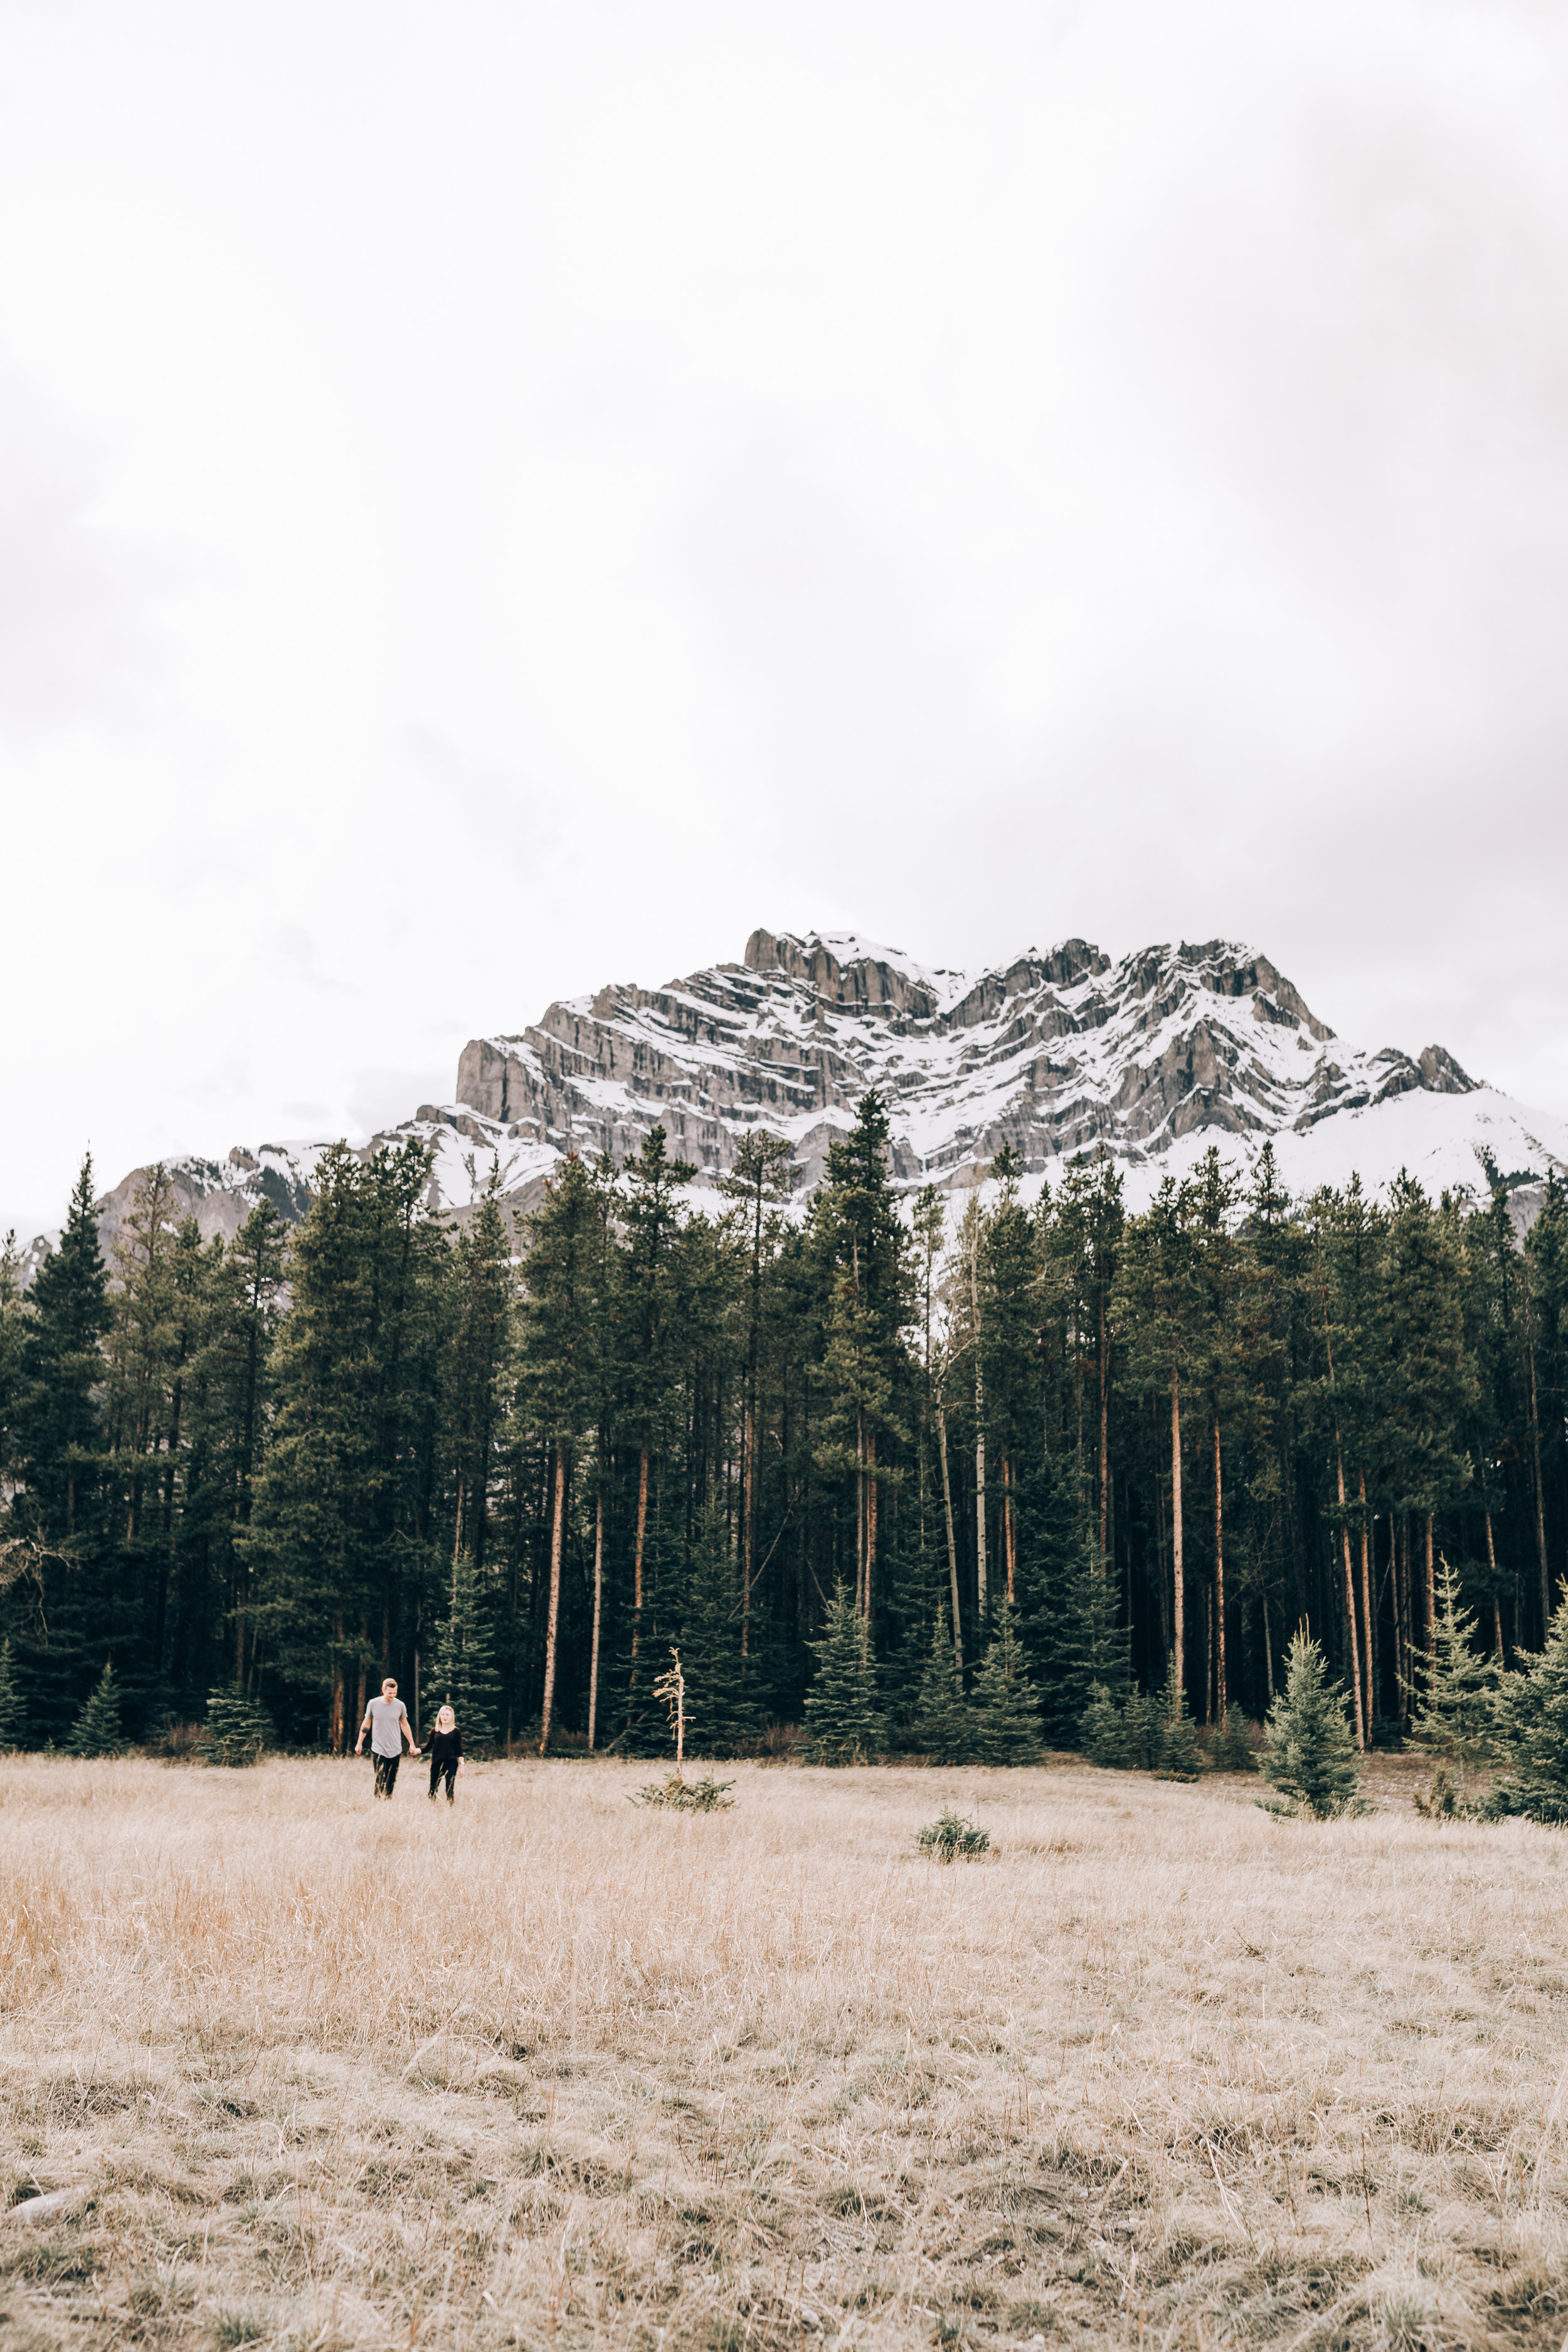 simpleperfectionsphotography.cullen+chelsey-2.jpg